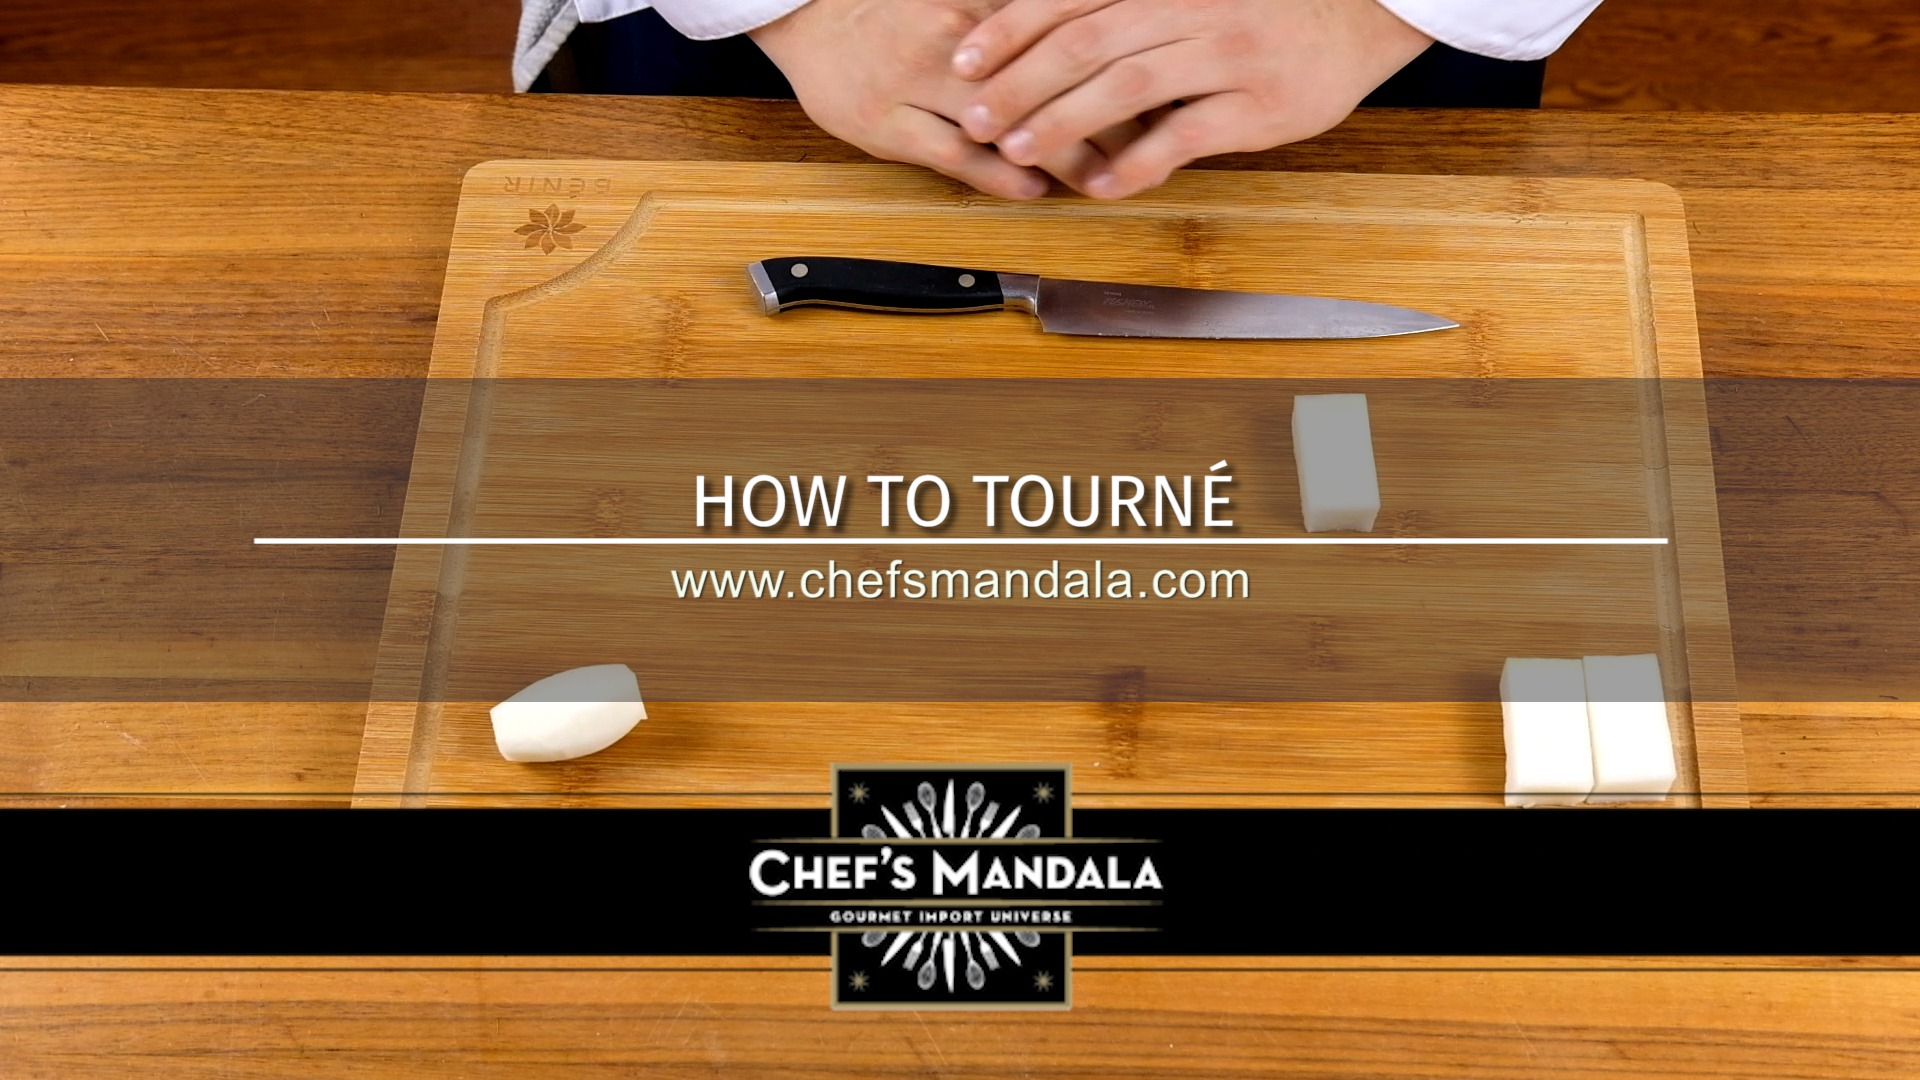 HOW TO TOURNE